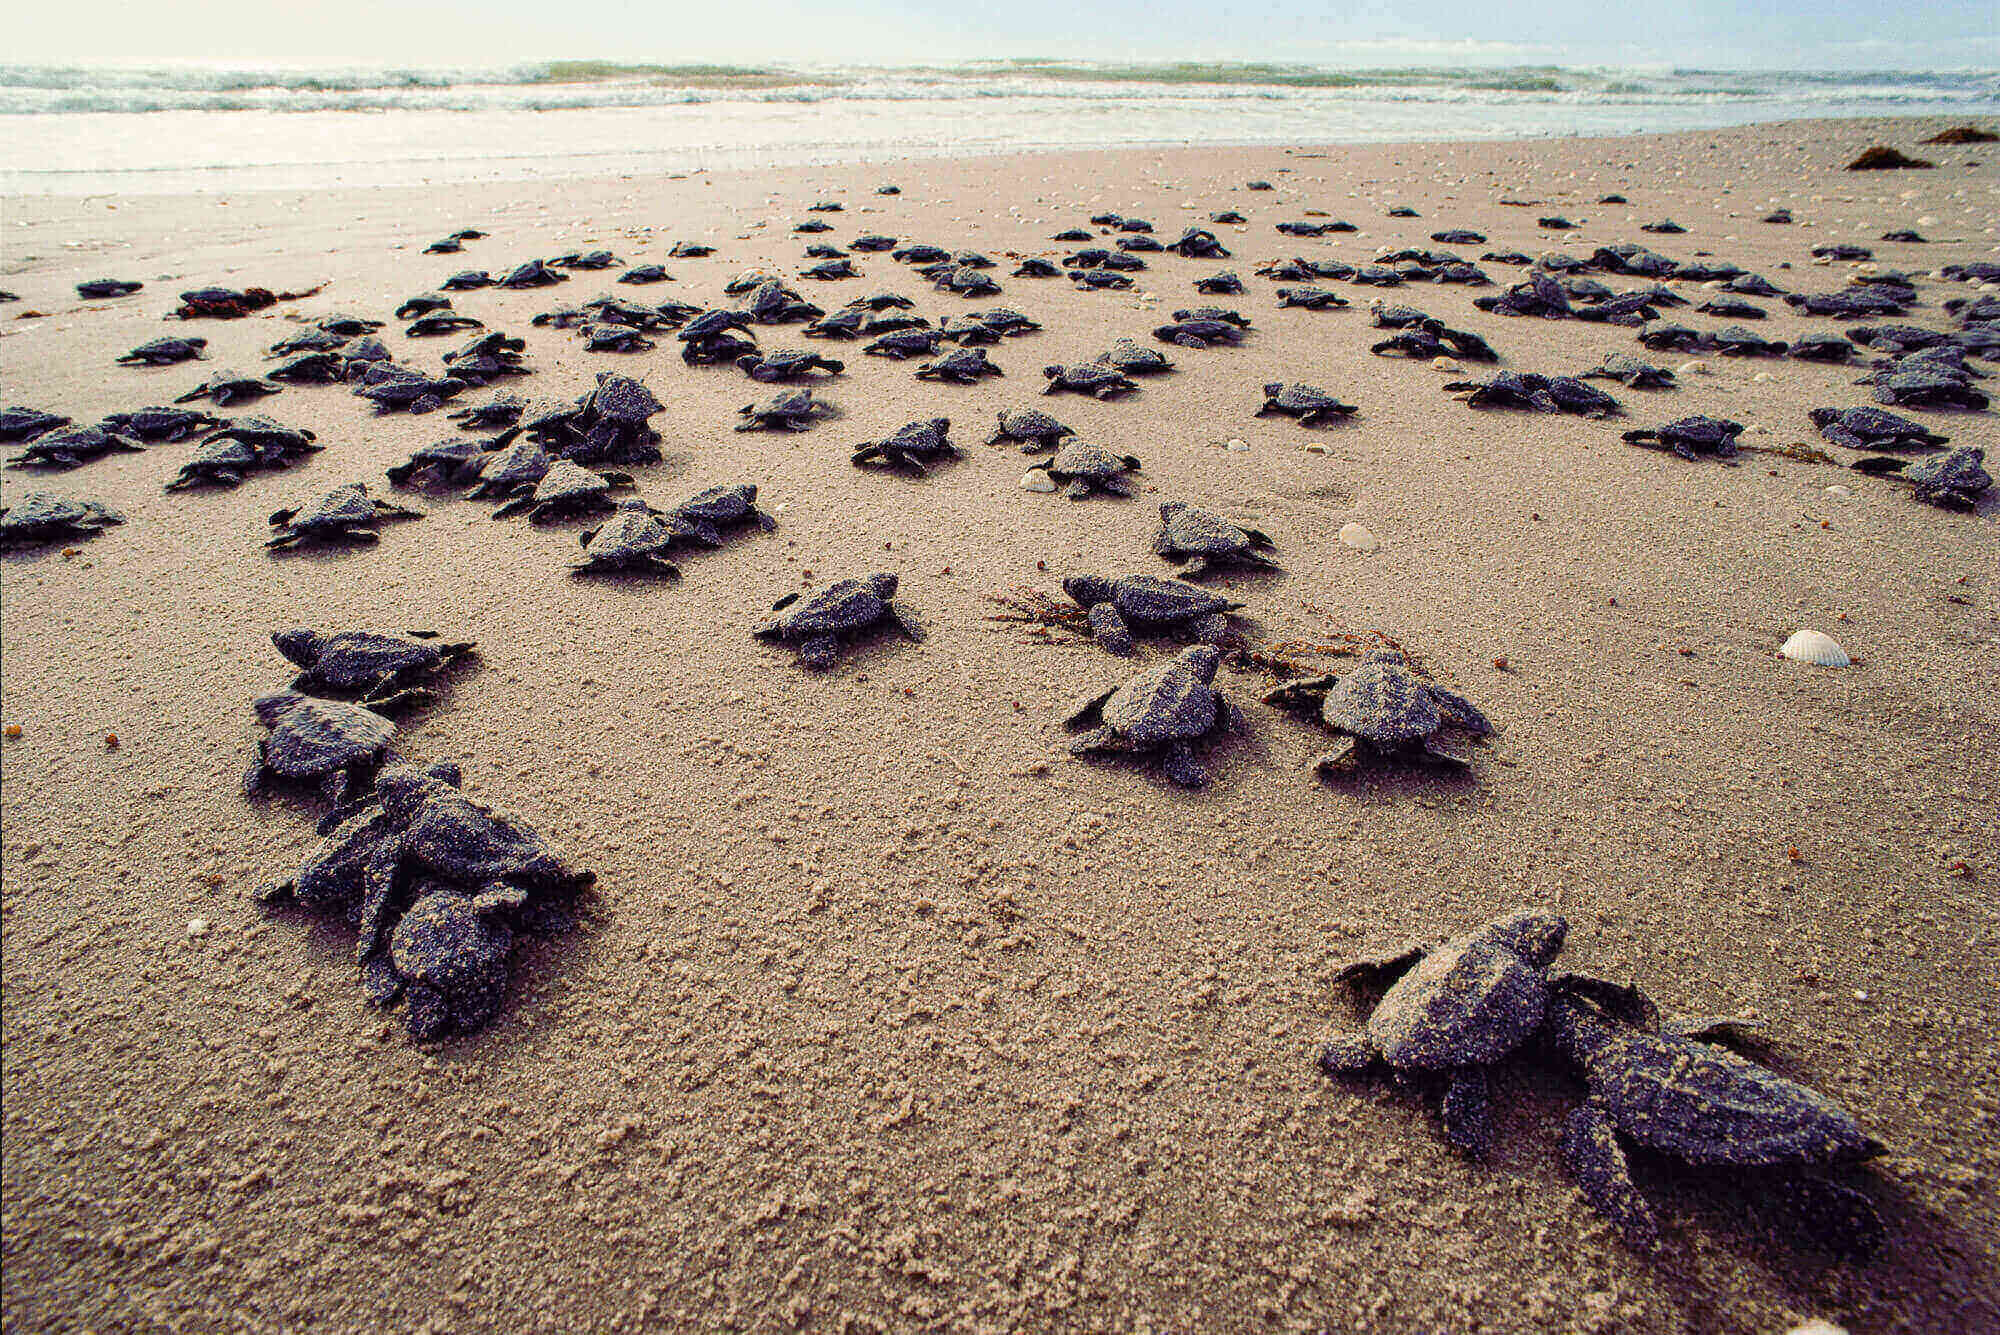 Pakistan loses nesting grounds for Green sea turtles by 30%